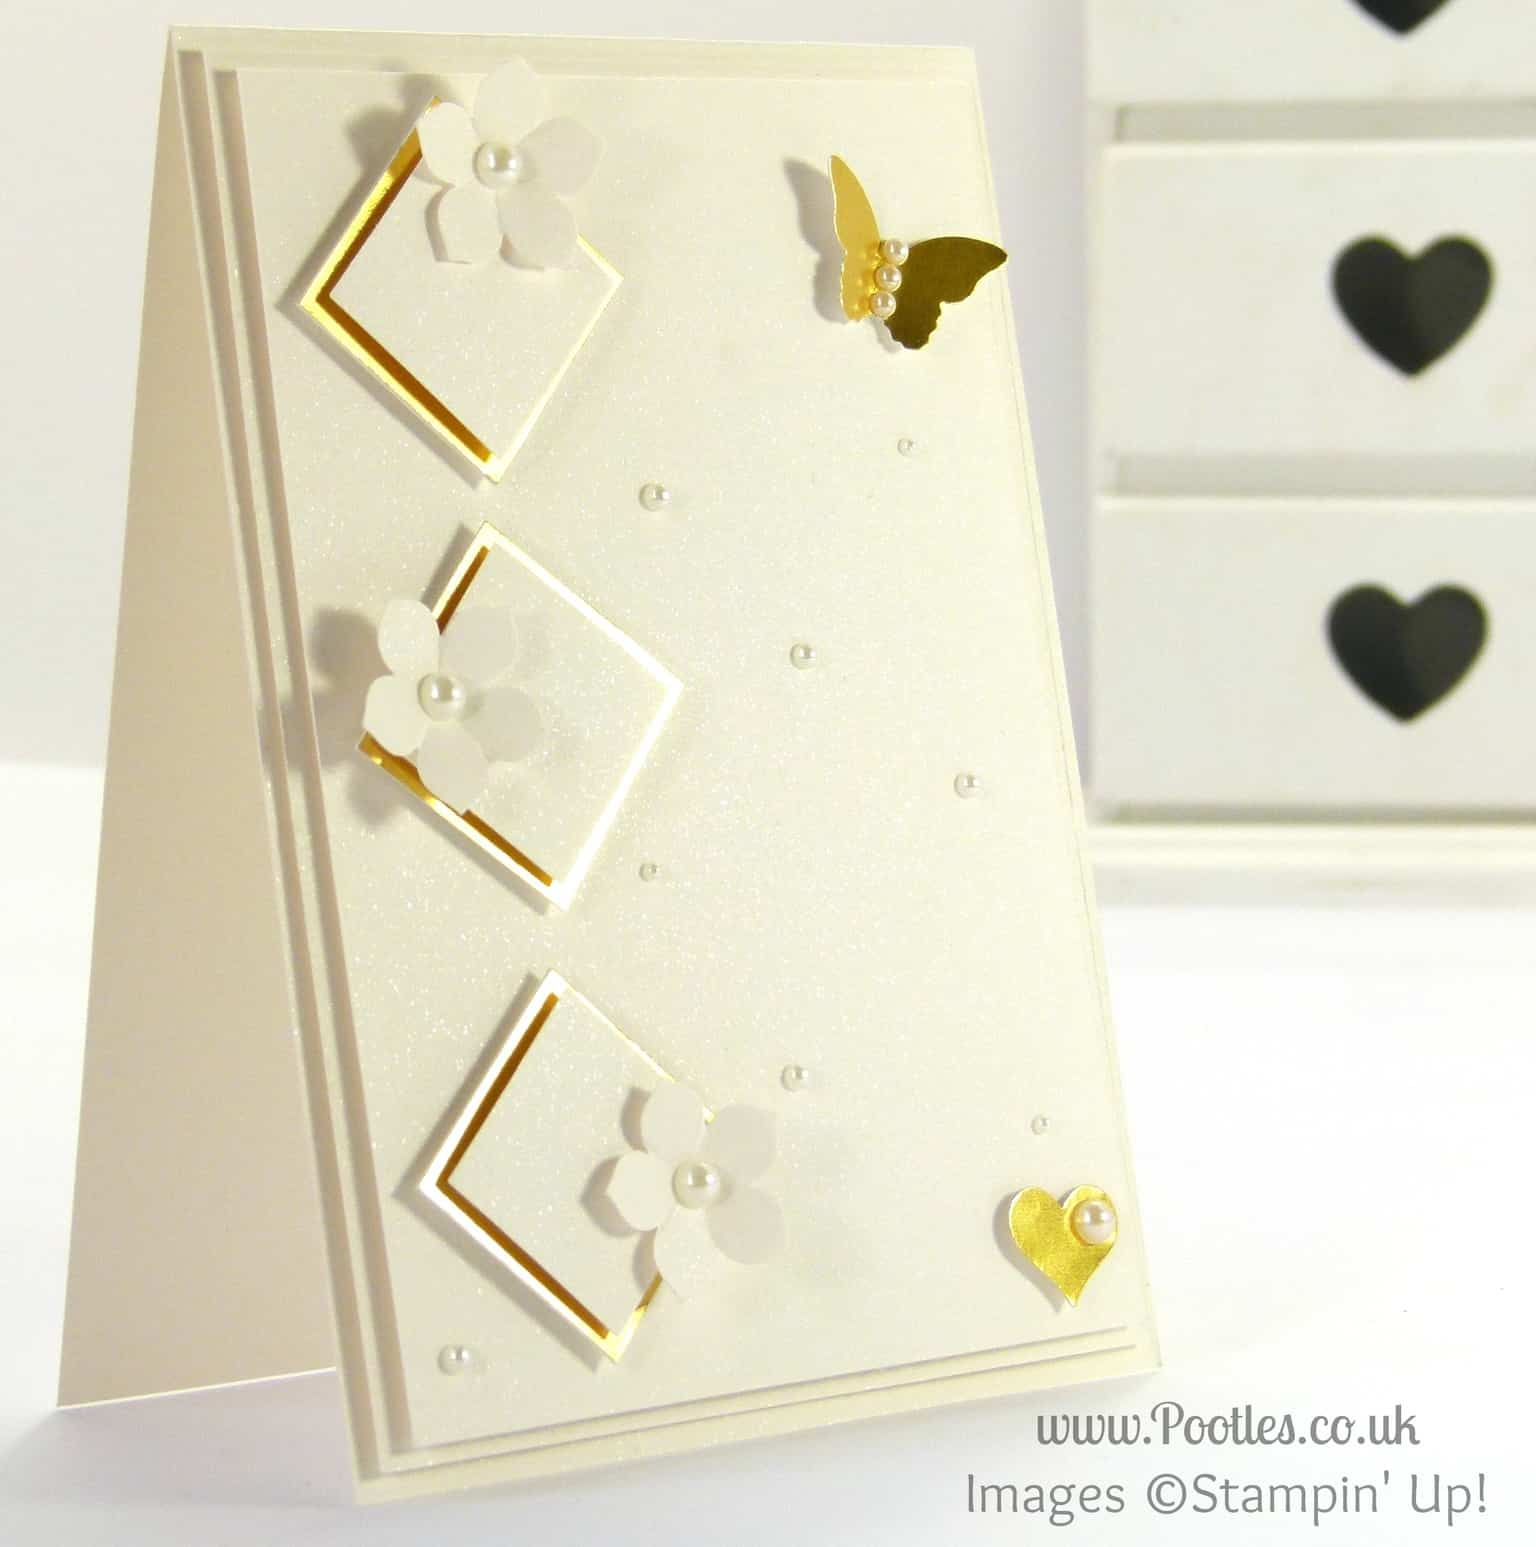 Stampin' Up! UK Demonstrator Pootles - South Hill Designs on Sunday The Gold Diamond Card